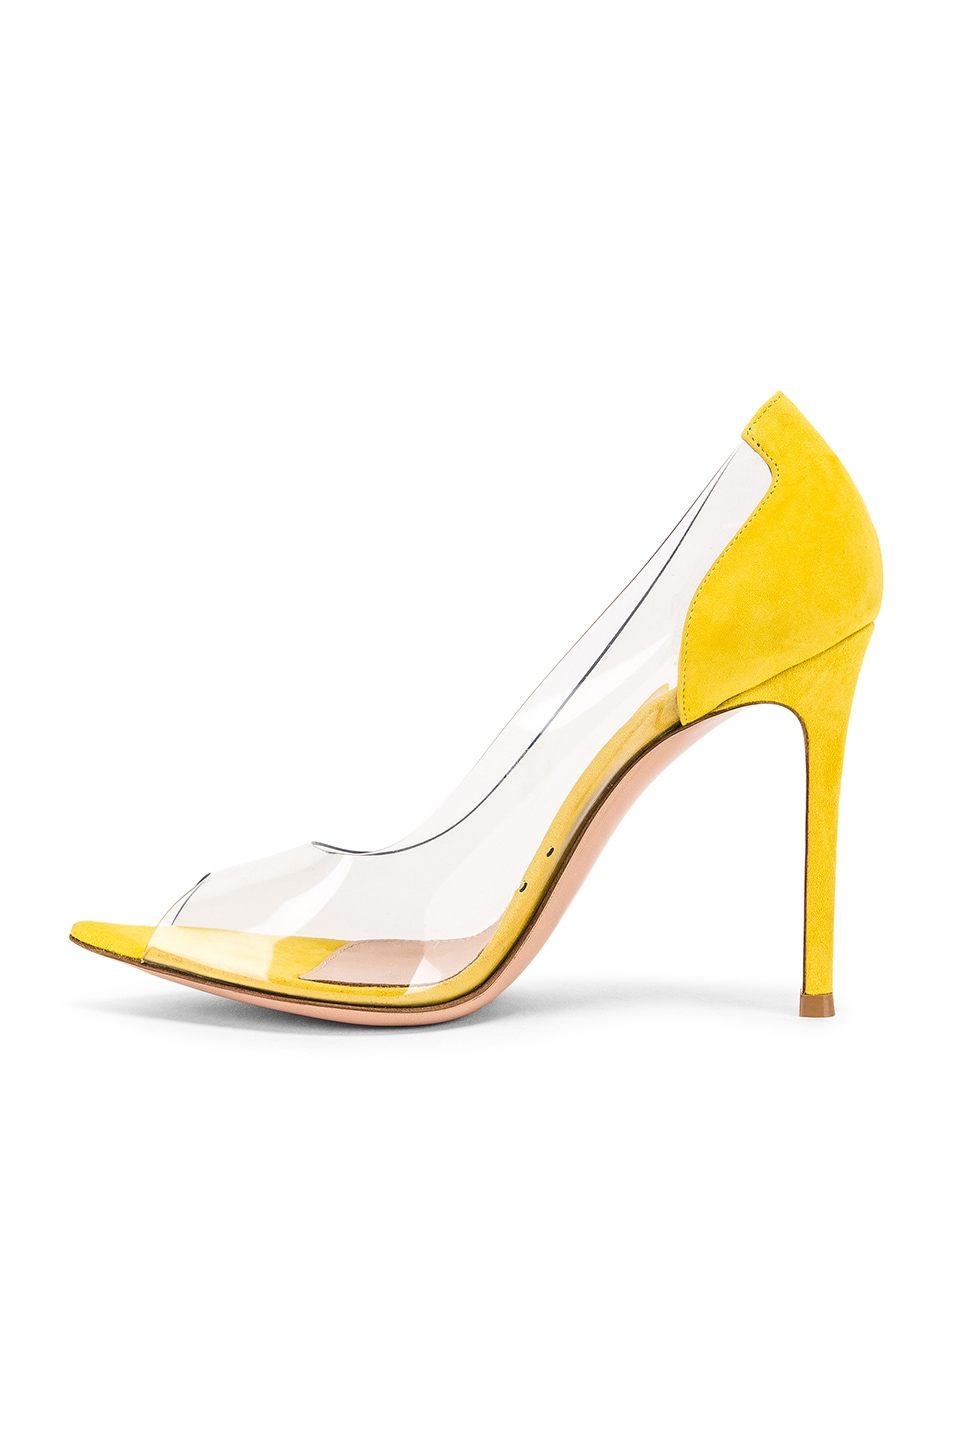 Image 5 of Gianvito Rossi Open Toe Heel in Mimosa & Transparent